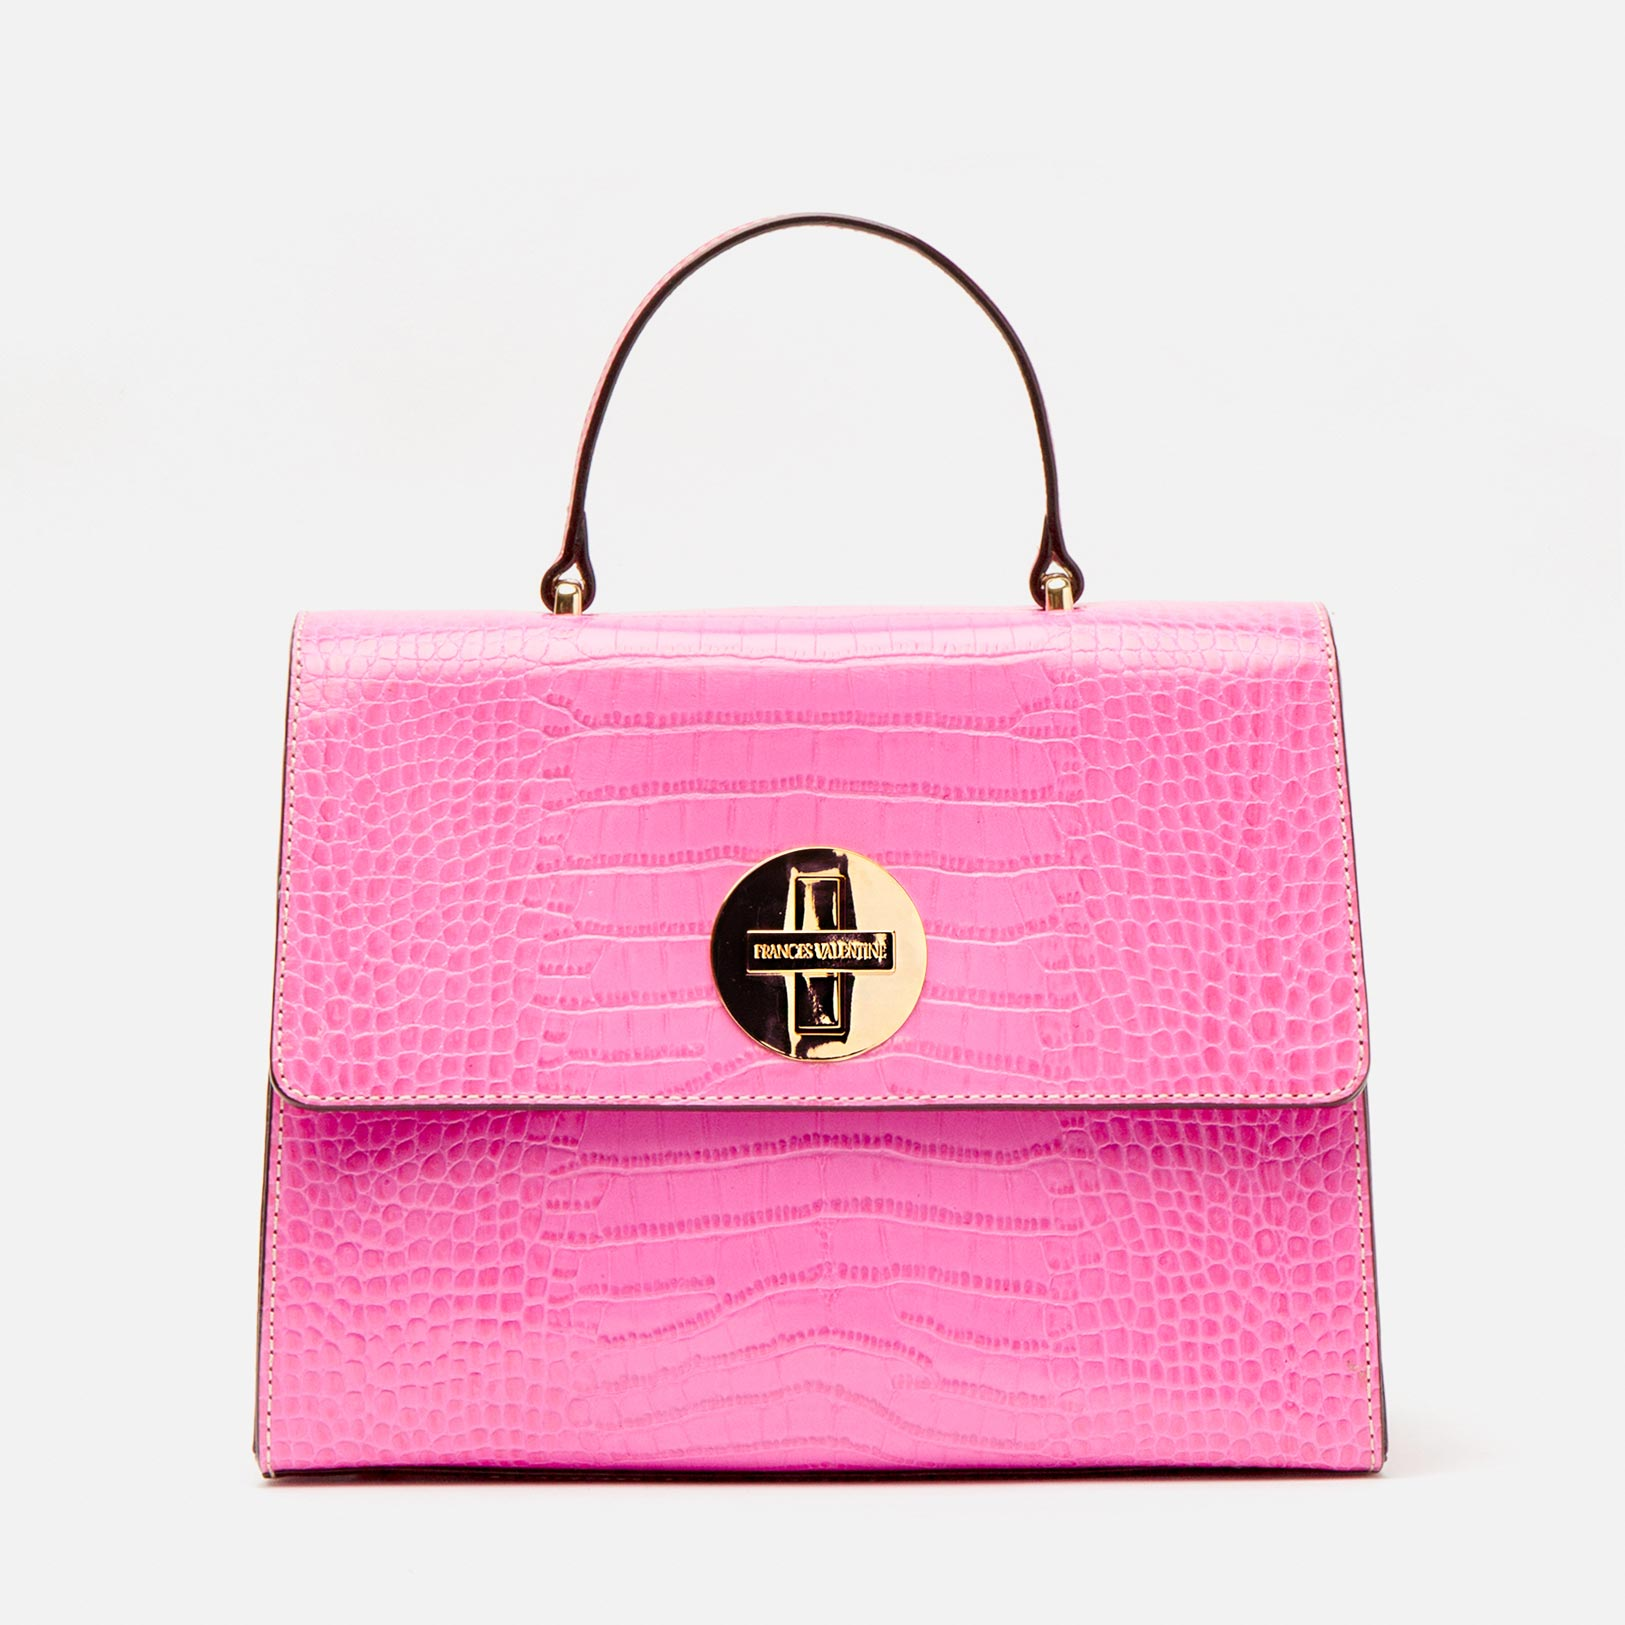 Holly Satchel Croc Embossed Leather Pink - Frances Valentine